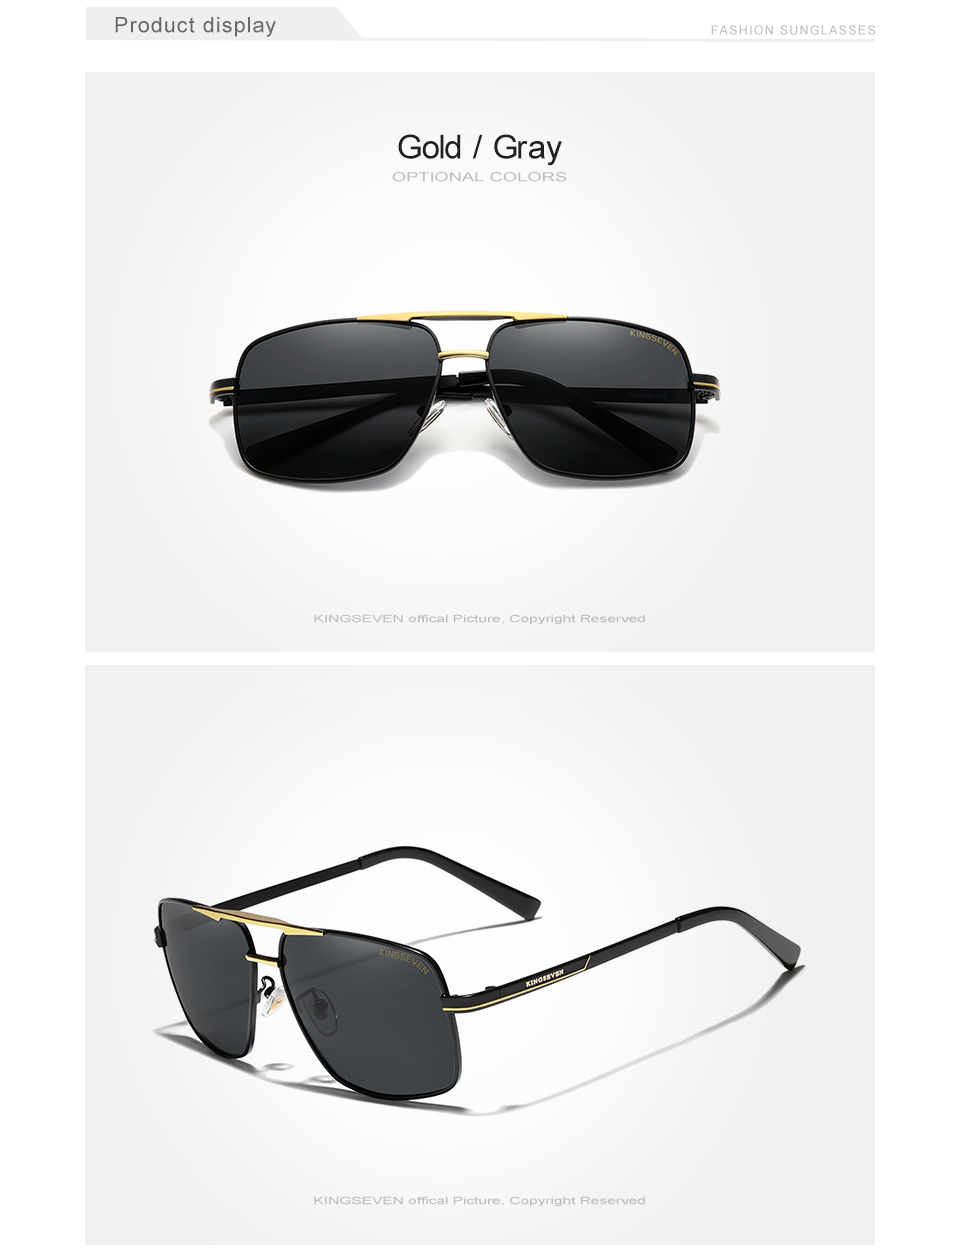 KINGSEVEN Men's Sunglasses Brand Designer Pilot Polarized Male Sun Glasses Eyeglasses gafas oculos de sol masculino For Men